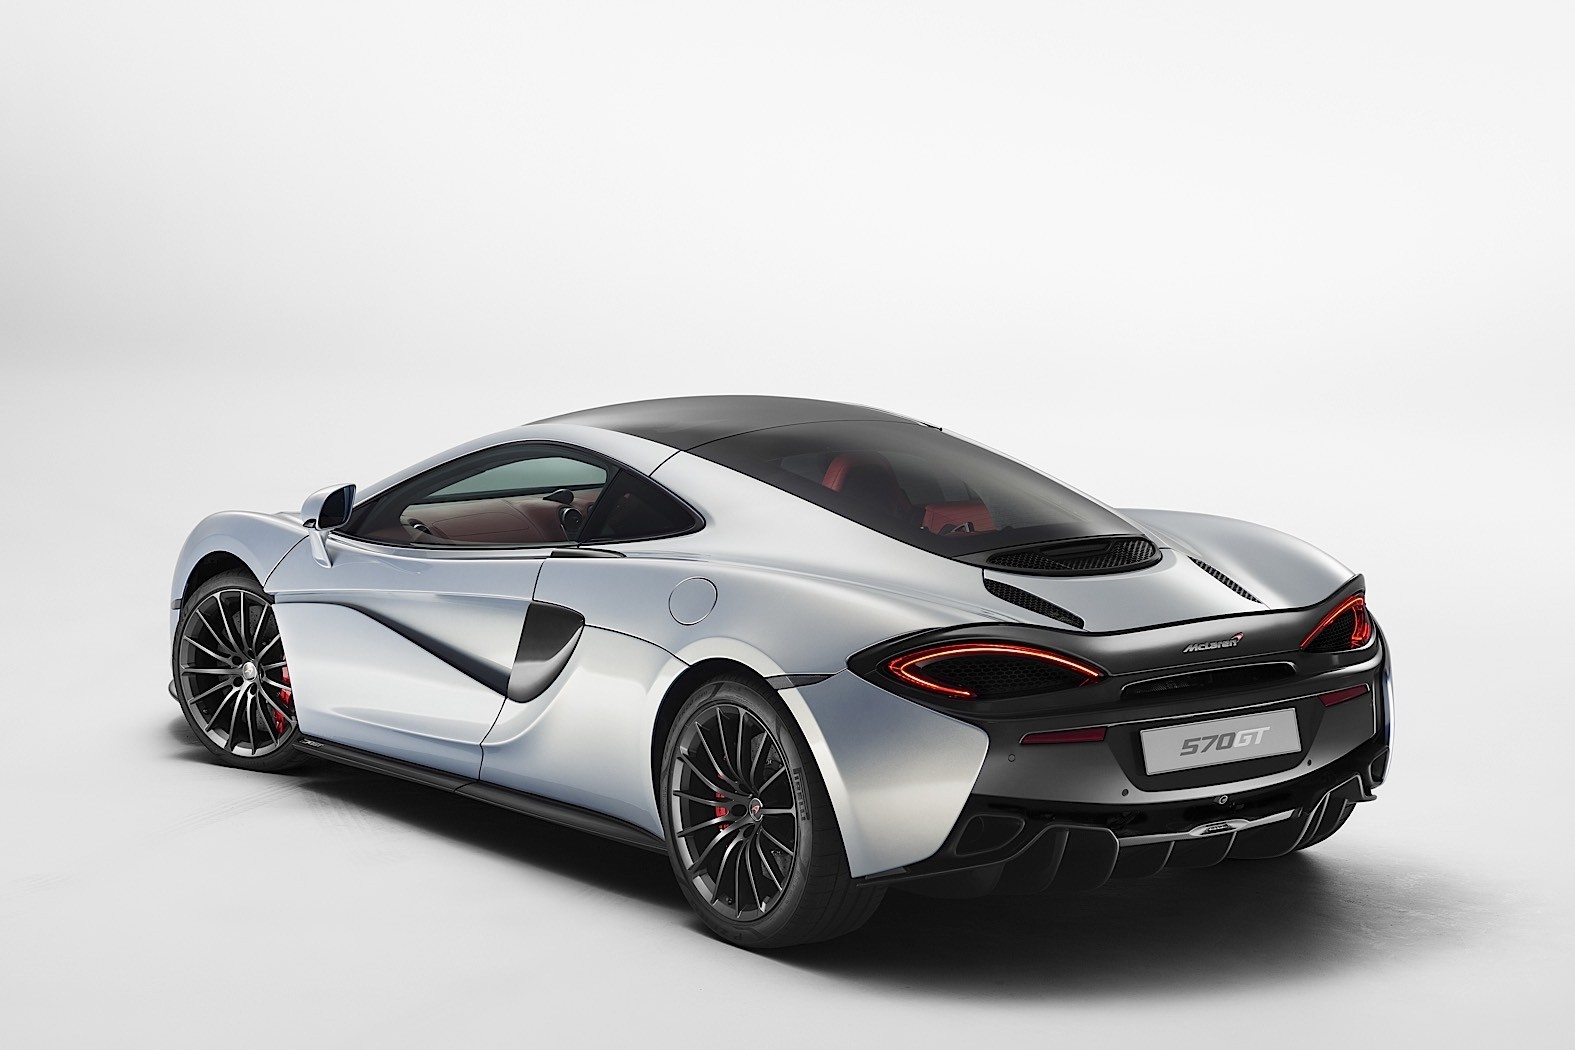 Mclaren 570gt Vs 570s The Comparison Of Everyday